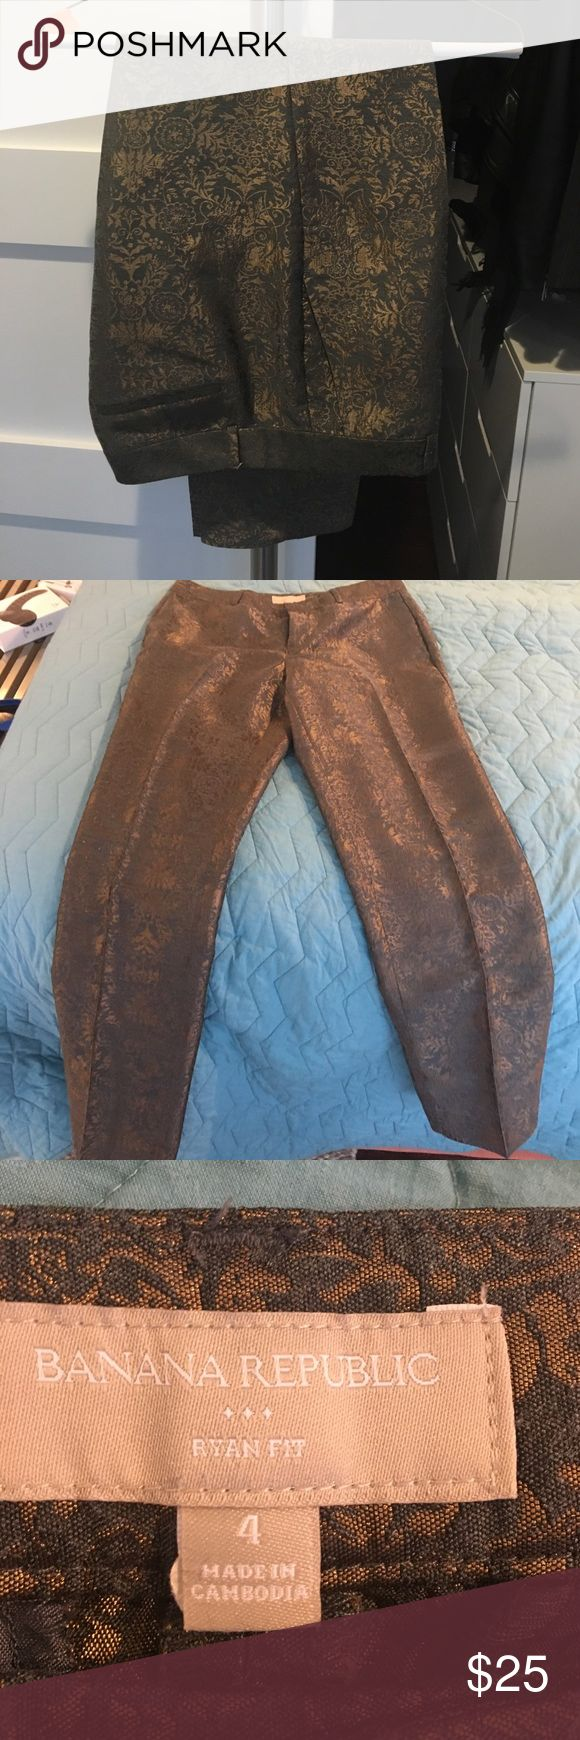 Banana republic Ryan Fit trousers Gold patter banana republic pants in excellent condition Banana Republic Pants Trousers